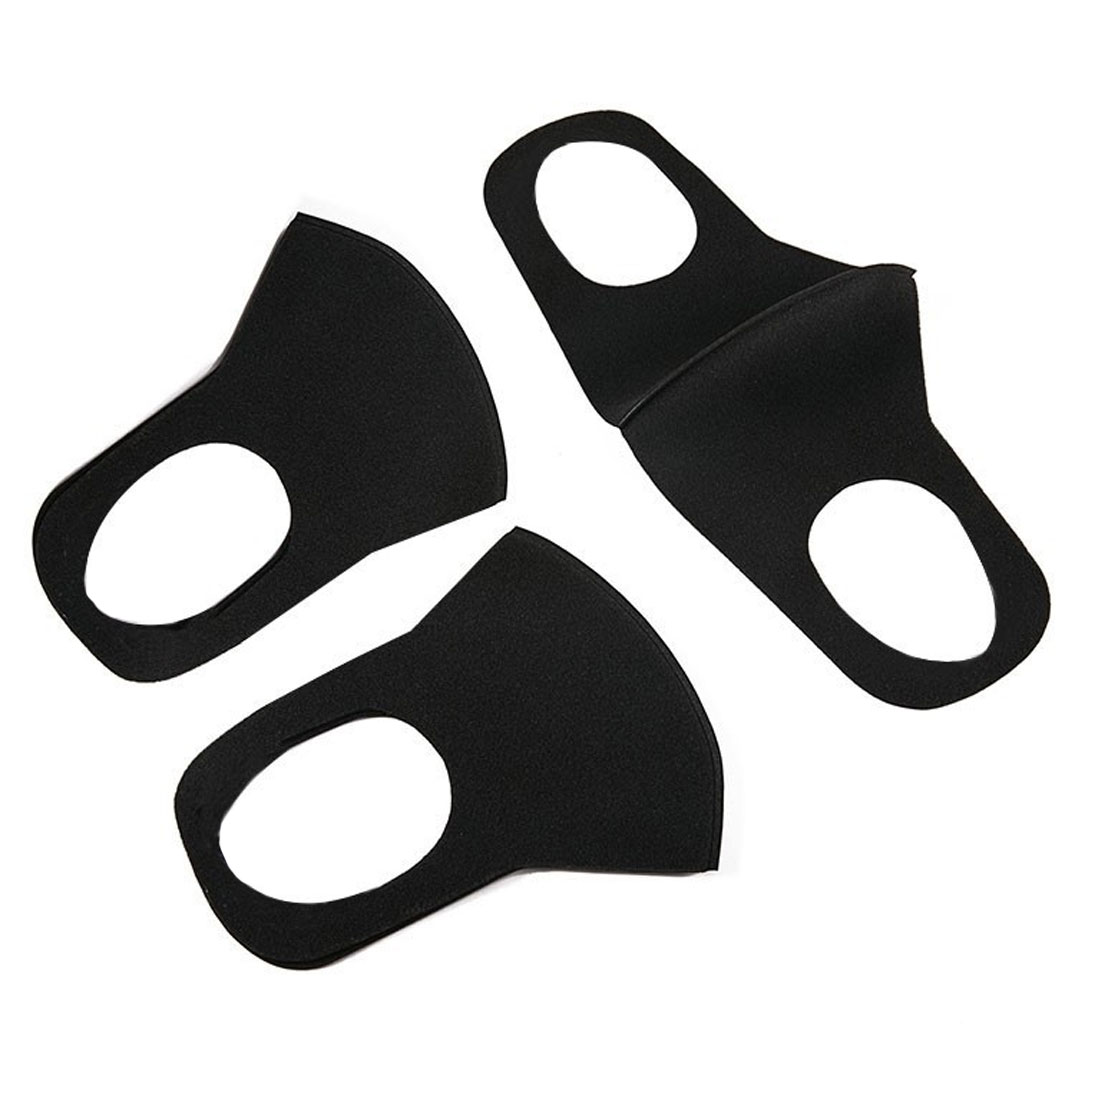 Simple 1PC Cotton Dust proof Mask Unisex Korean Style Black Bear Cycling Anti-Dust Cotton Facial Protective Cover Masks